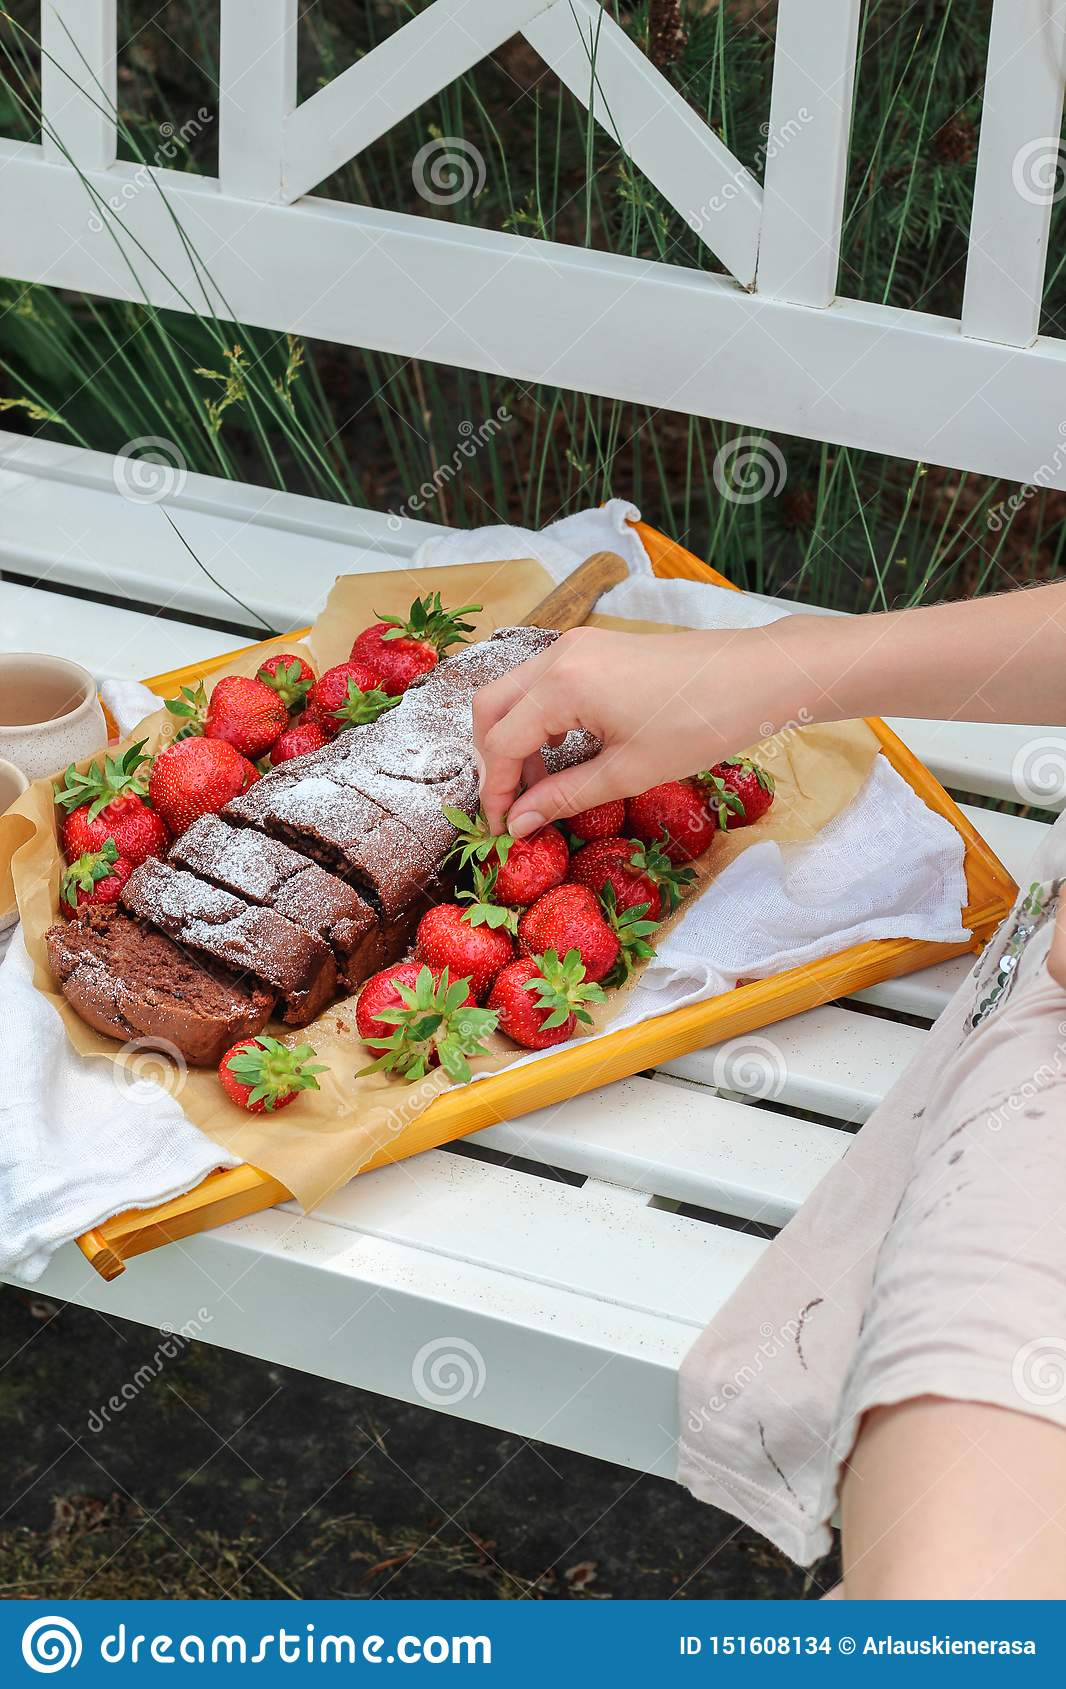 Young woman hand reaching for a tray with homemade cake and fresh strawberries